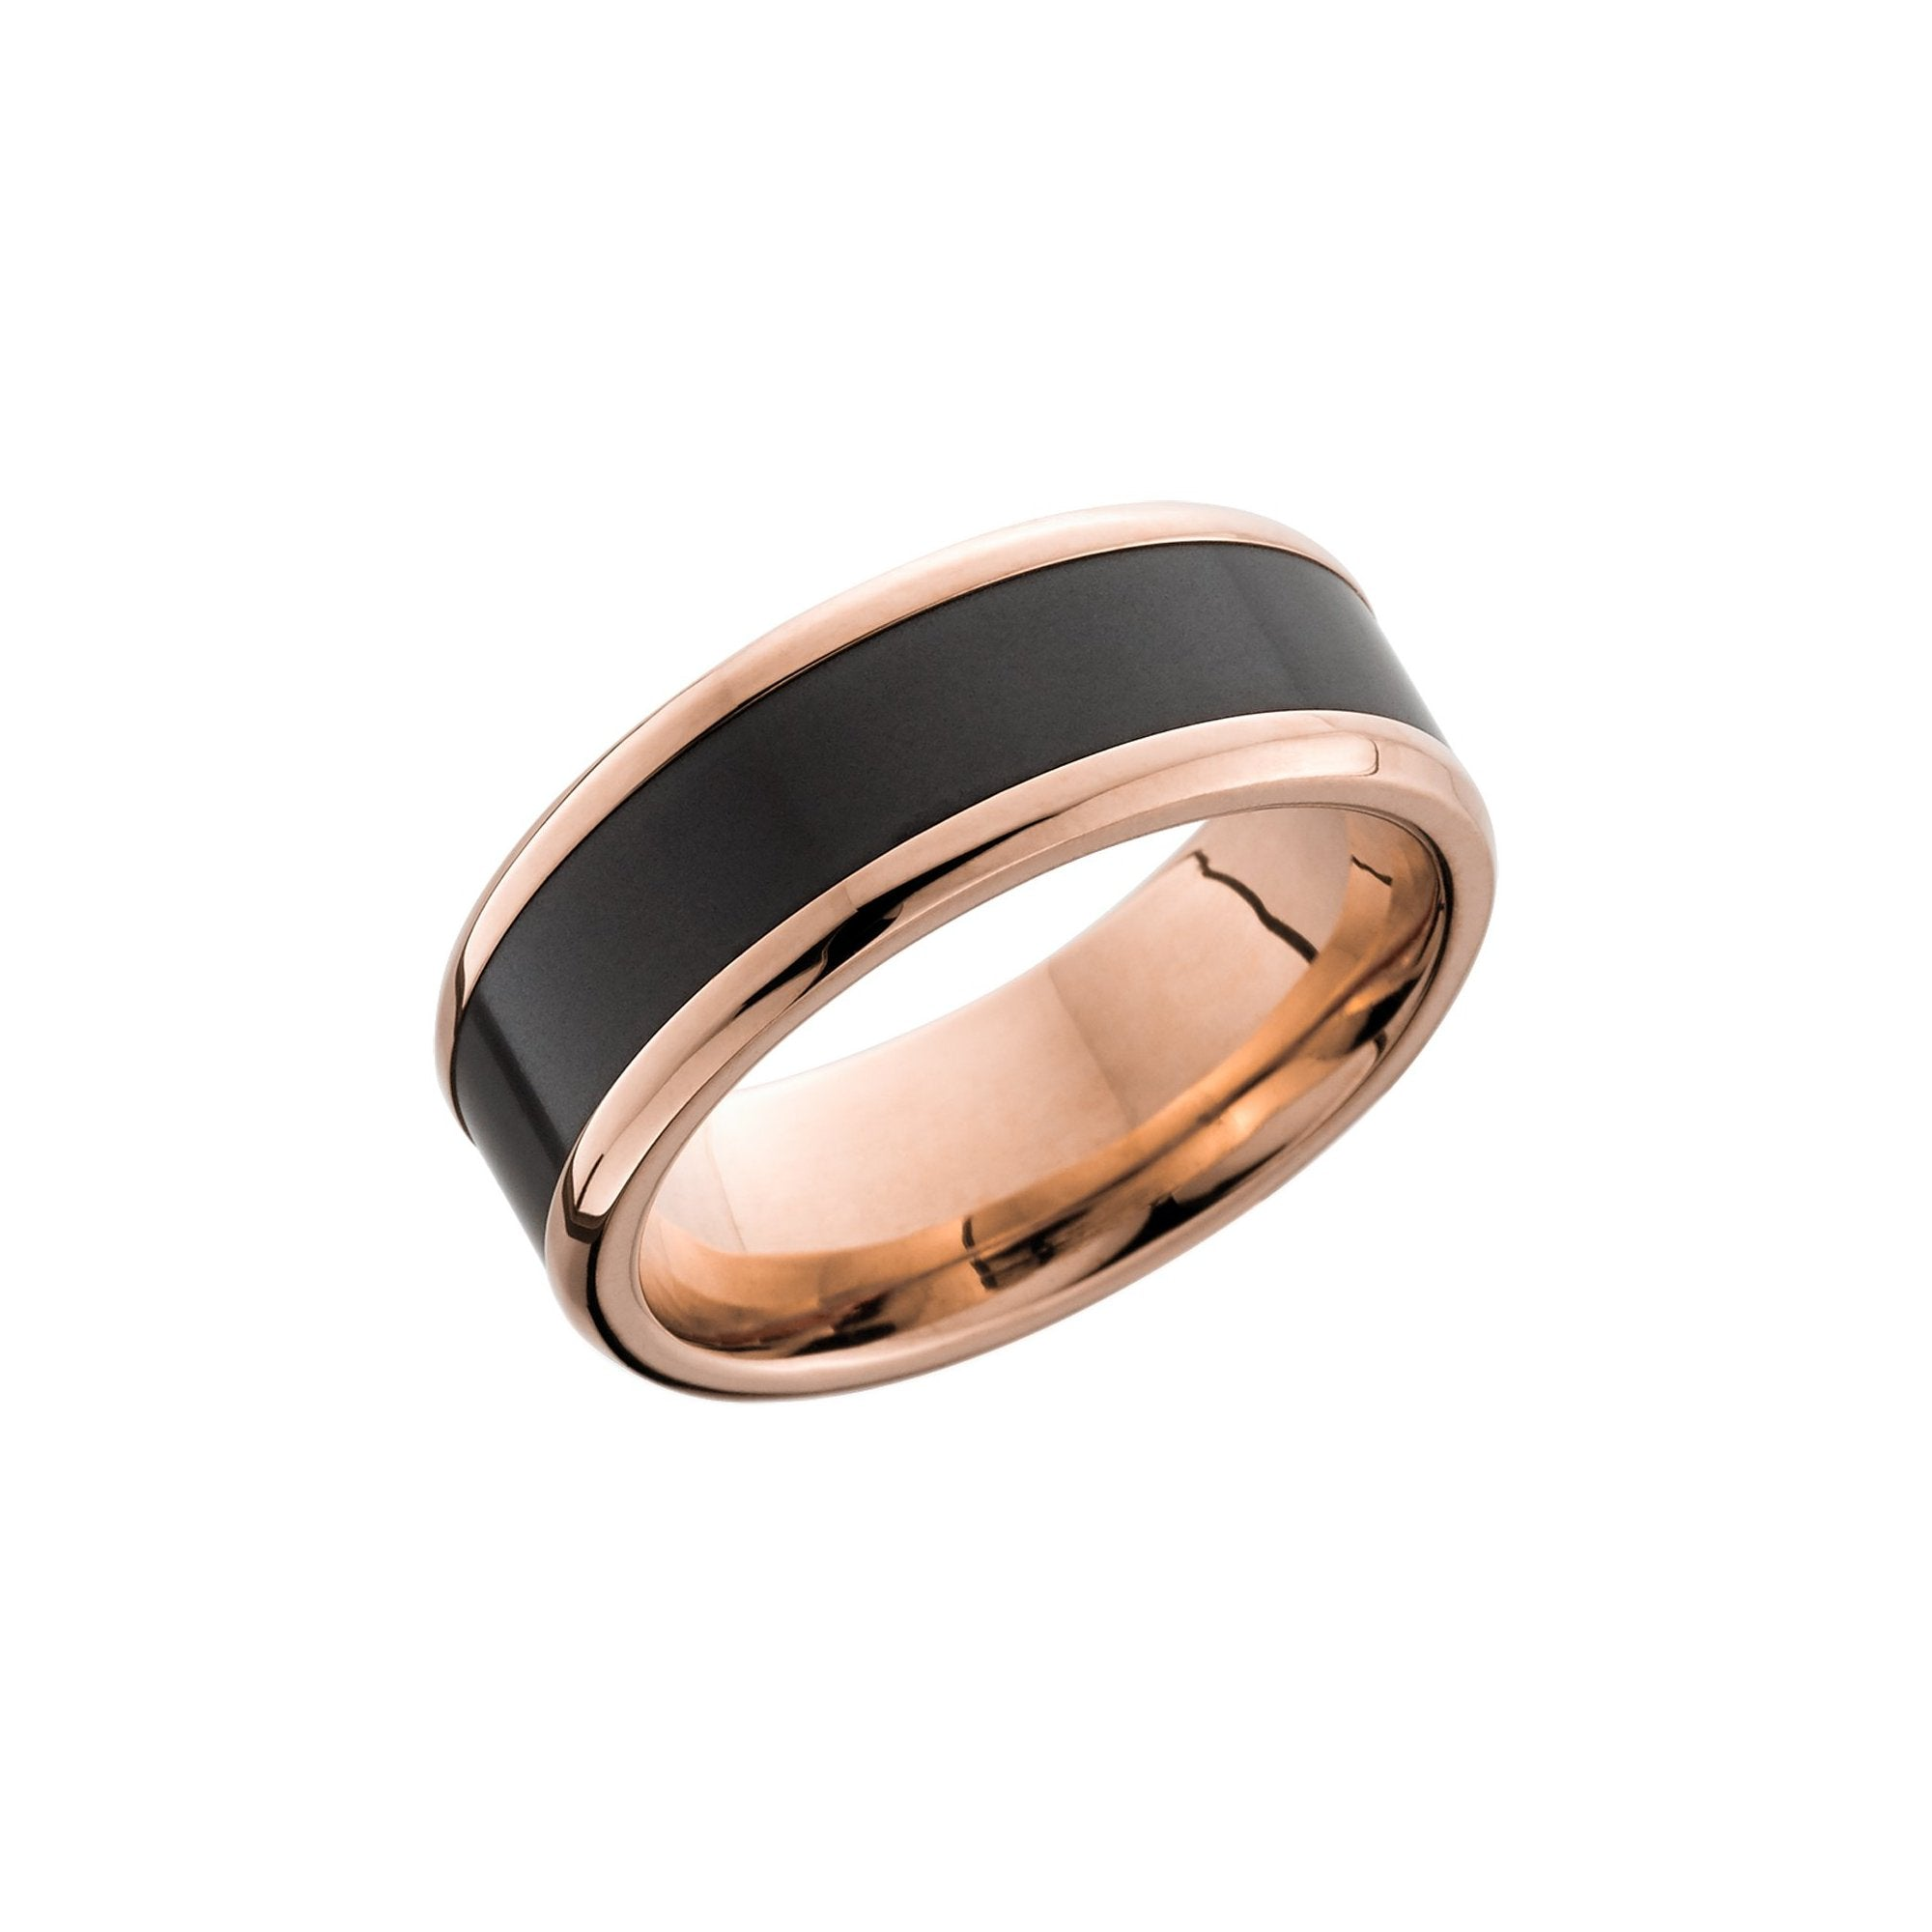 Ares 18k Rose Gold Band with Elysium Black Diamond Inlay - Talisman Collection Fine Jewelers